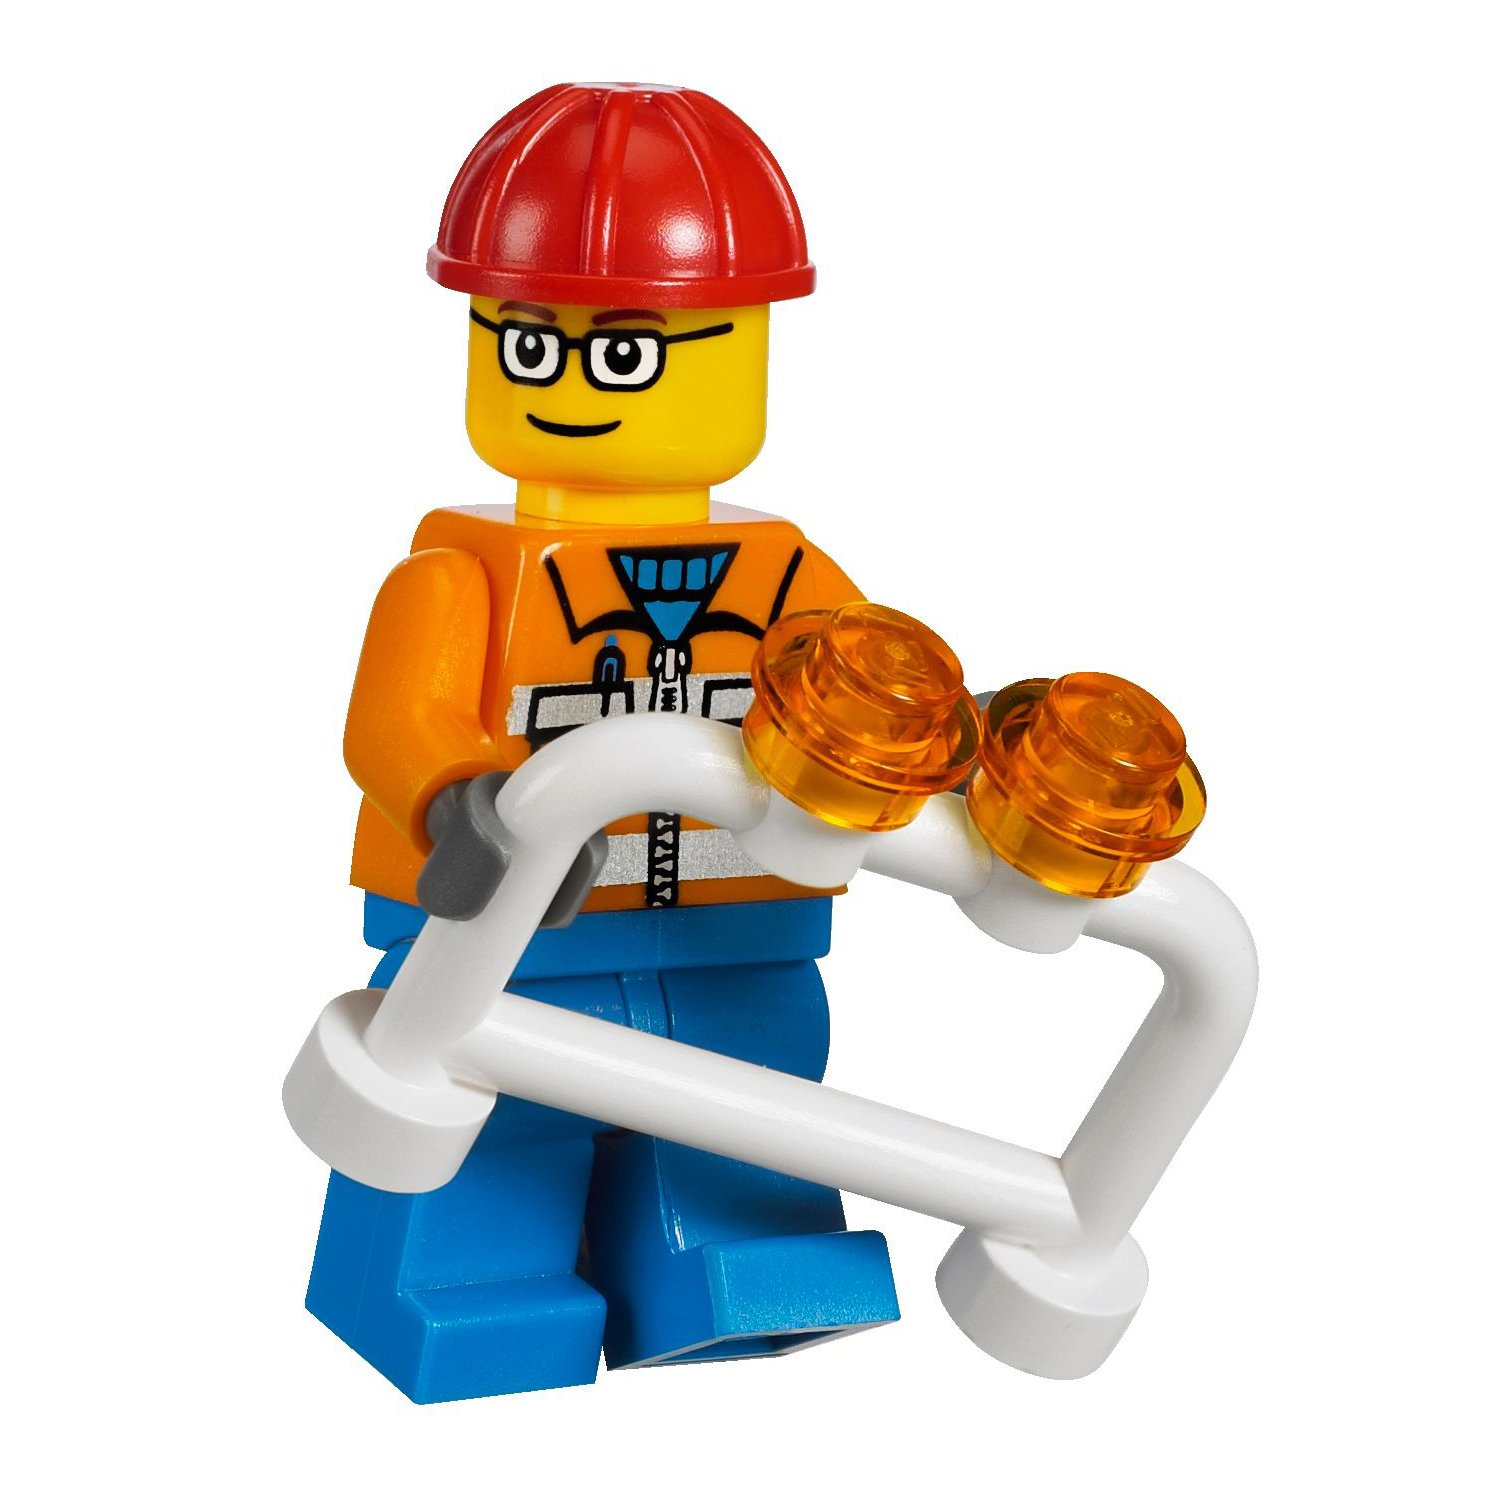 g_3179_minifigure_hr.jpg